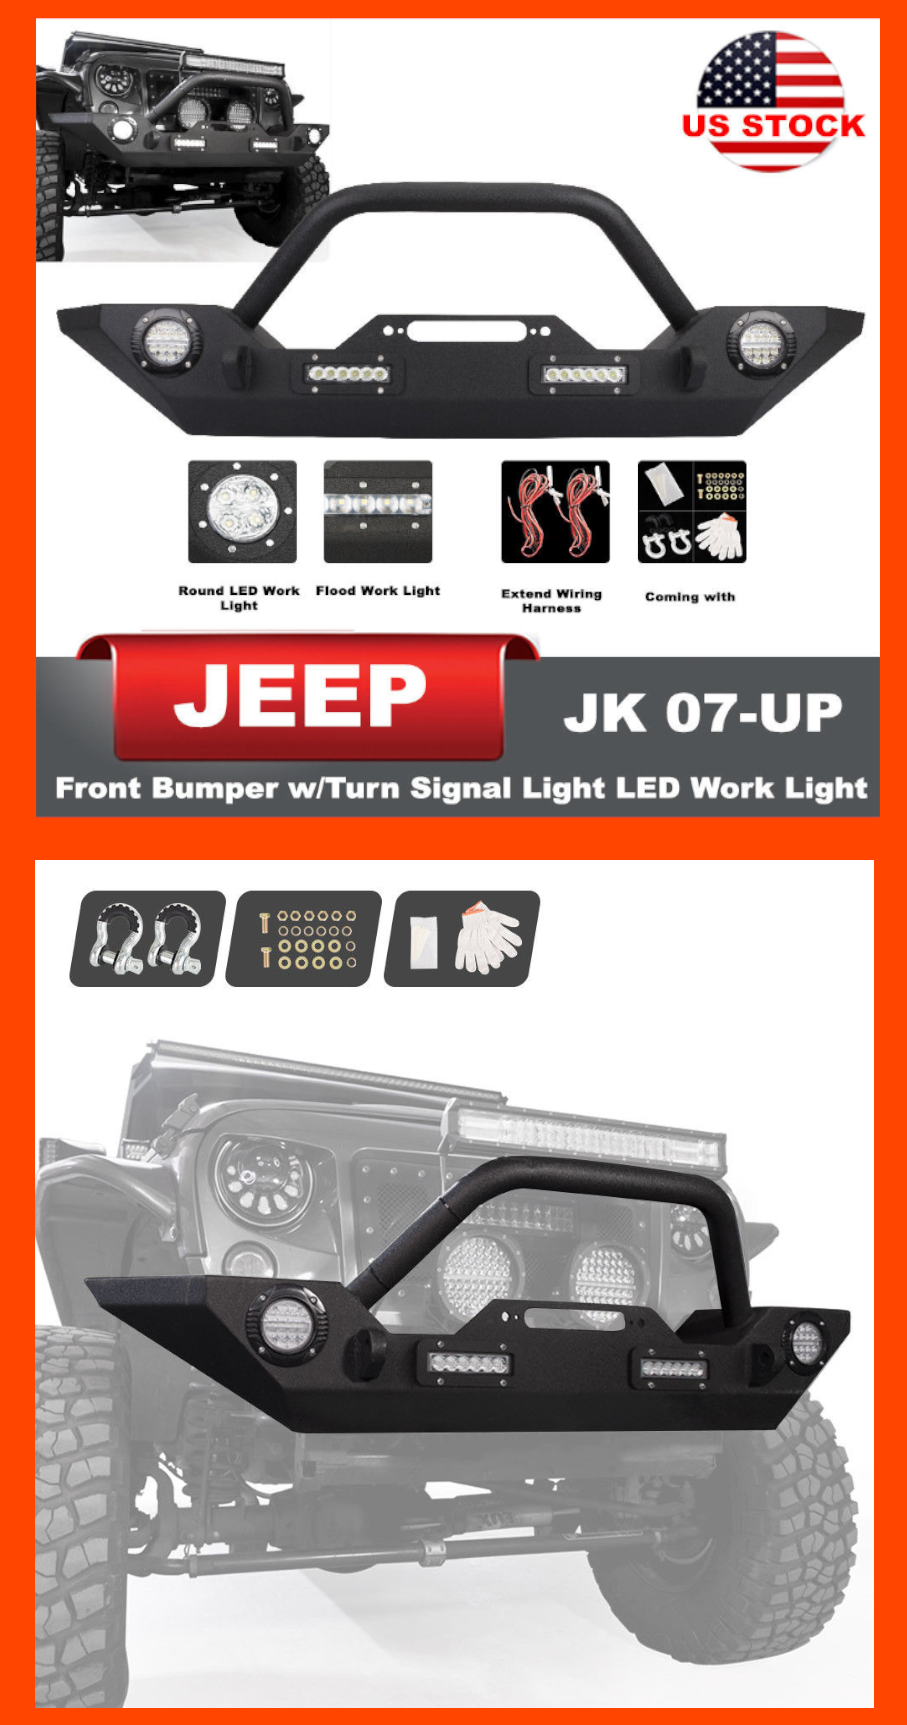 hight resolution of front bumper built in winch plate turn signal lights for jeep wrangler jk us 169 90 jeep jeeplife jk wrangler rubicon bumper 4wd offroad suv